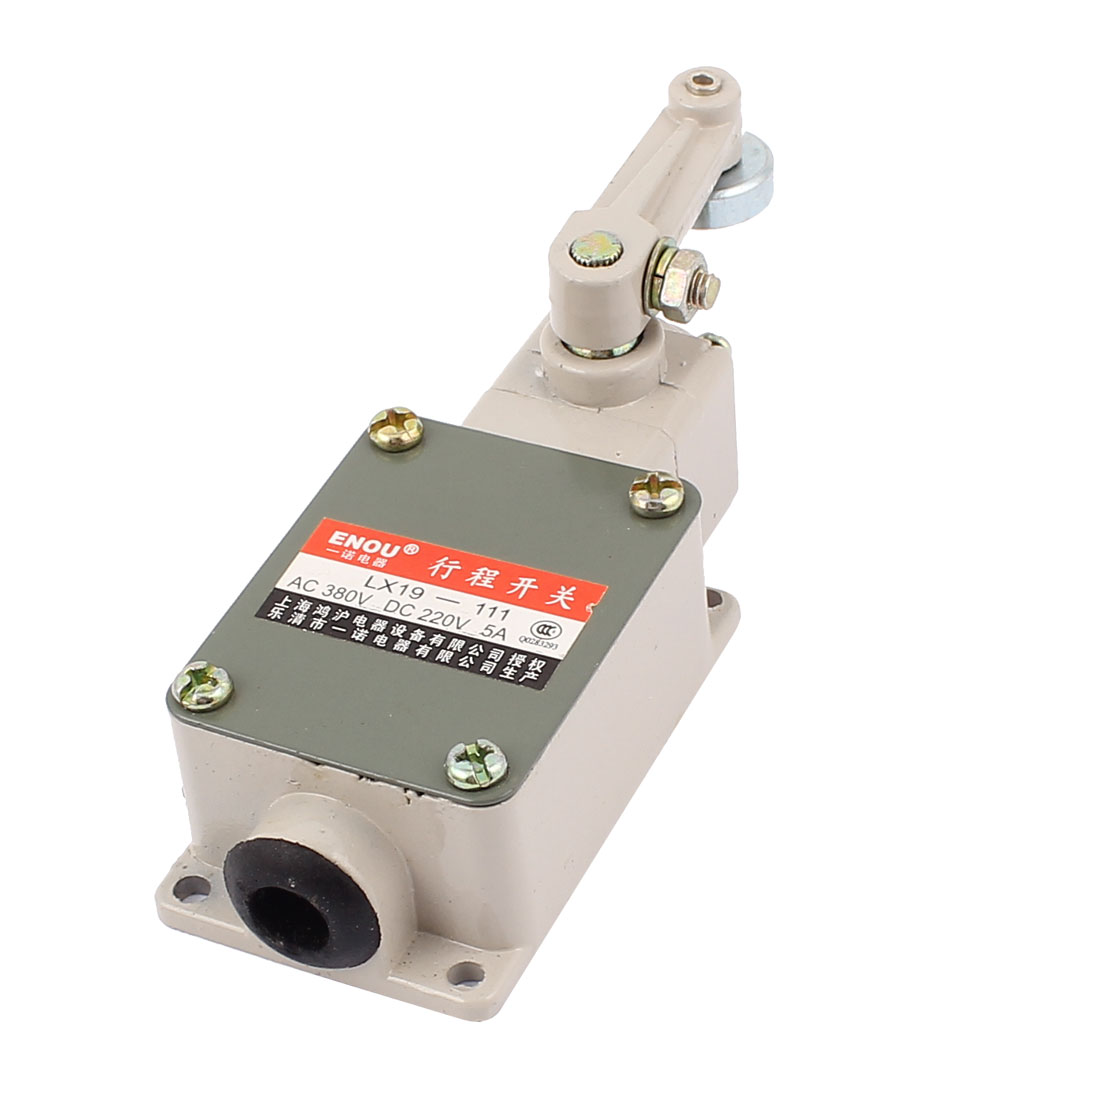 LX19-111 AC 380V 5A Rotating Roller Lever Arm Enclosed Limit Switch